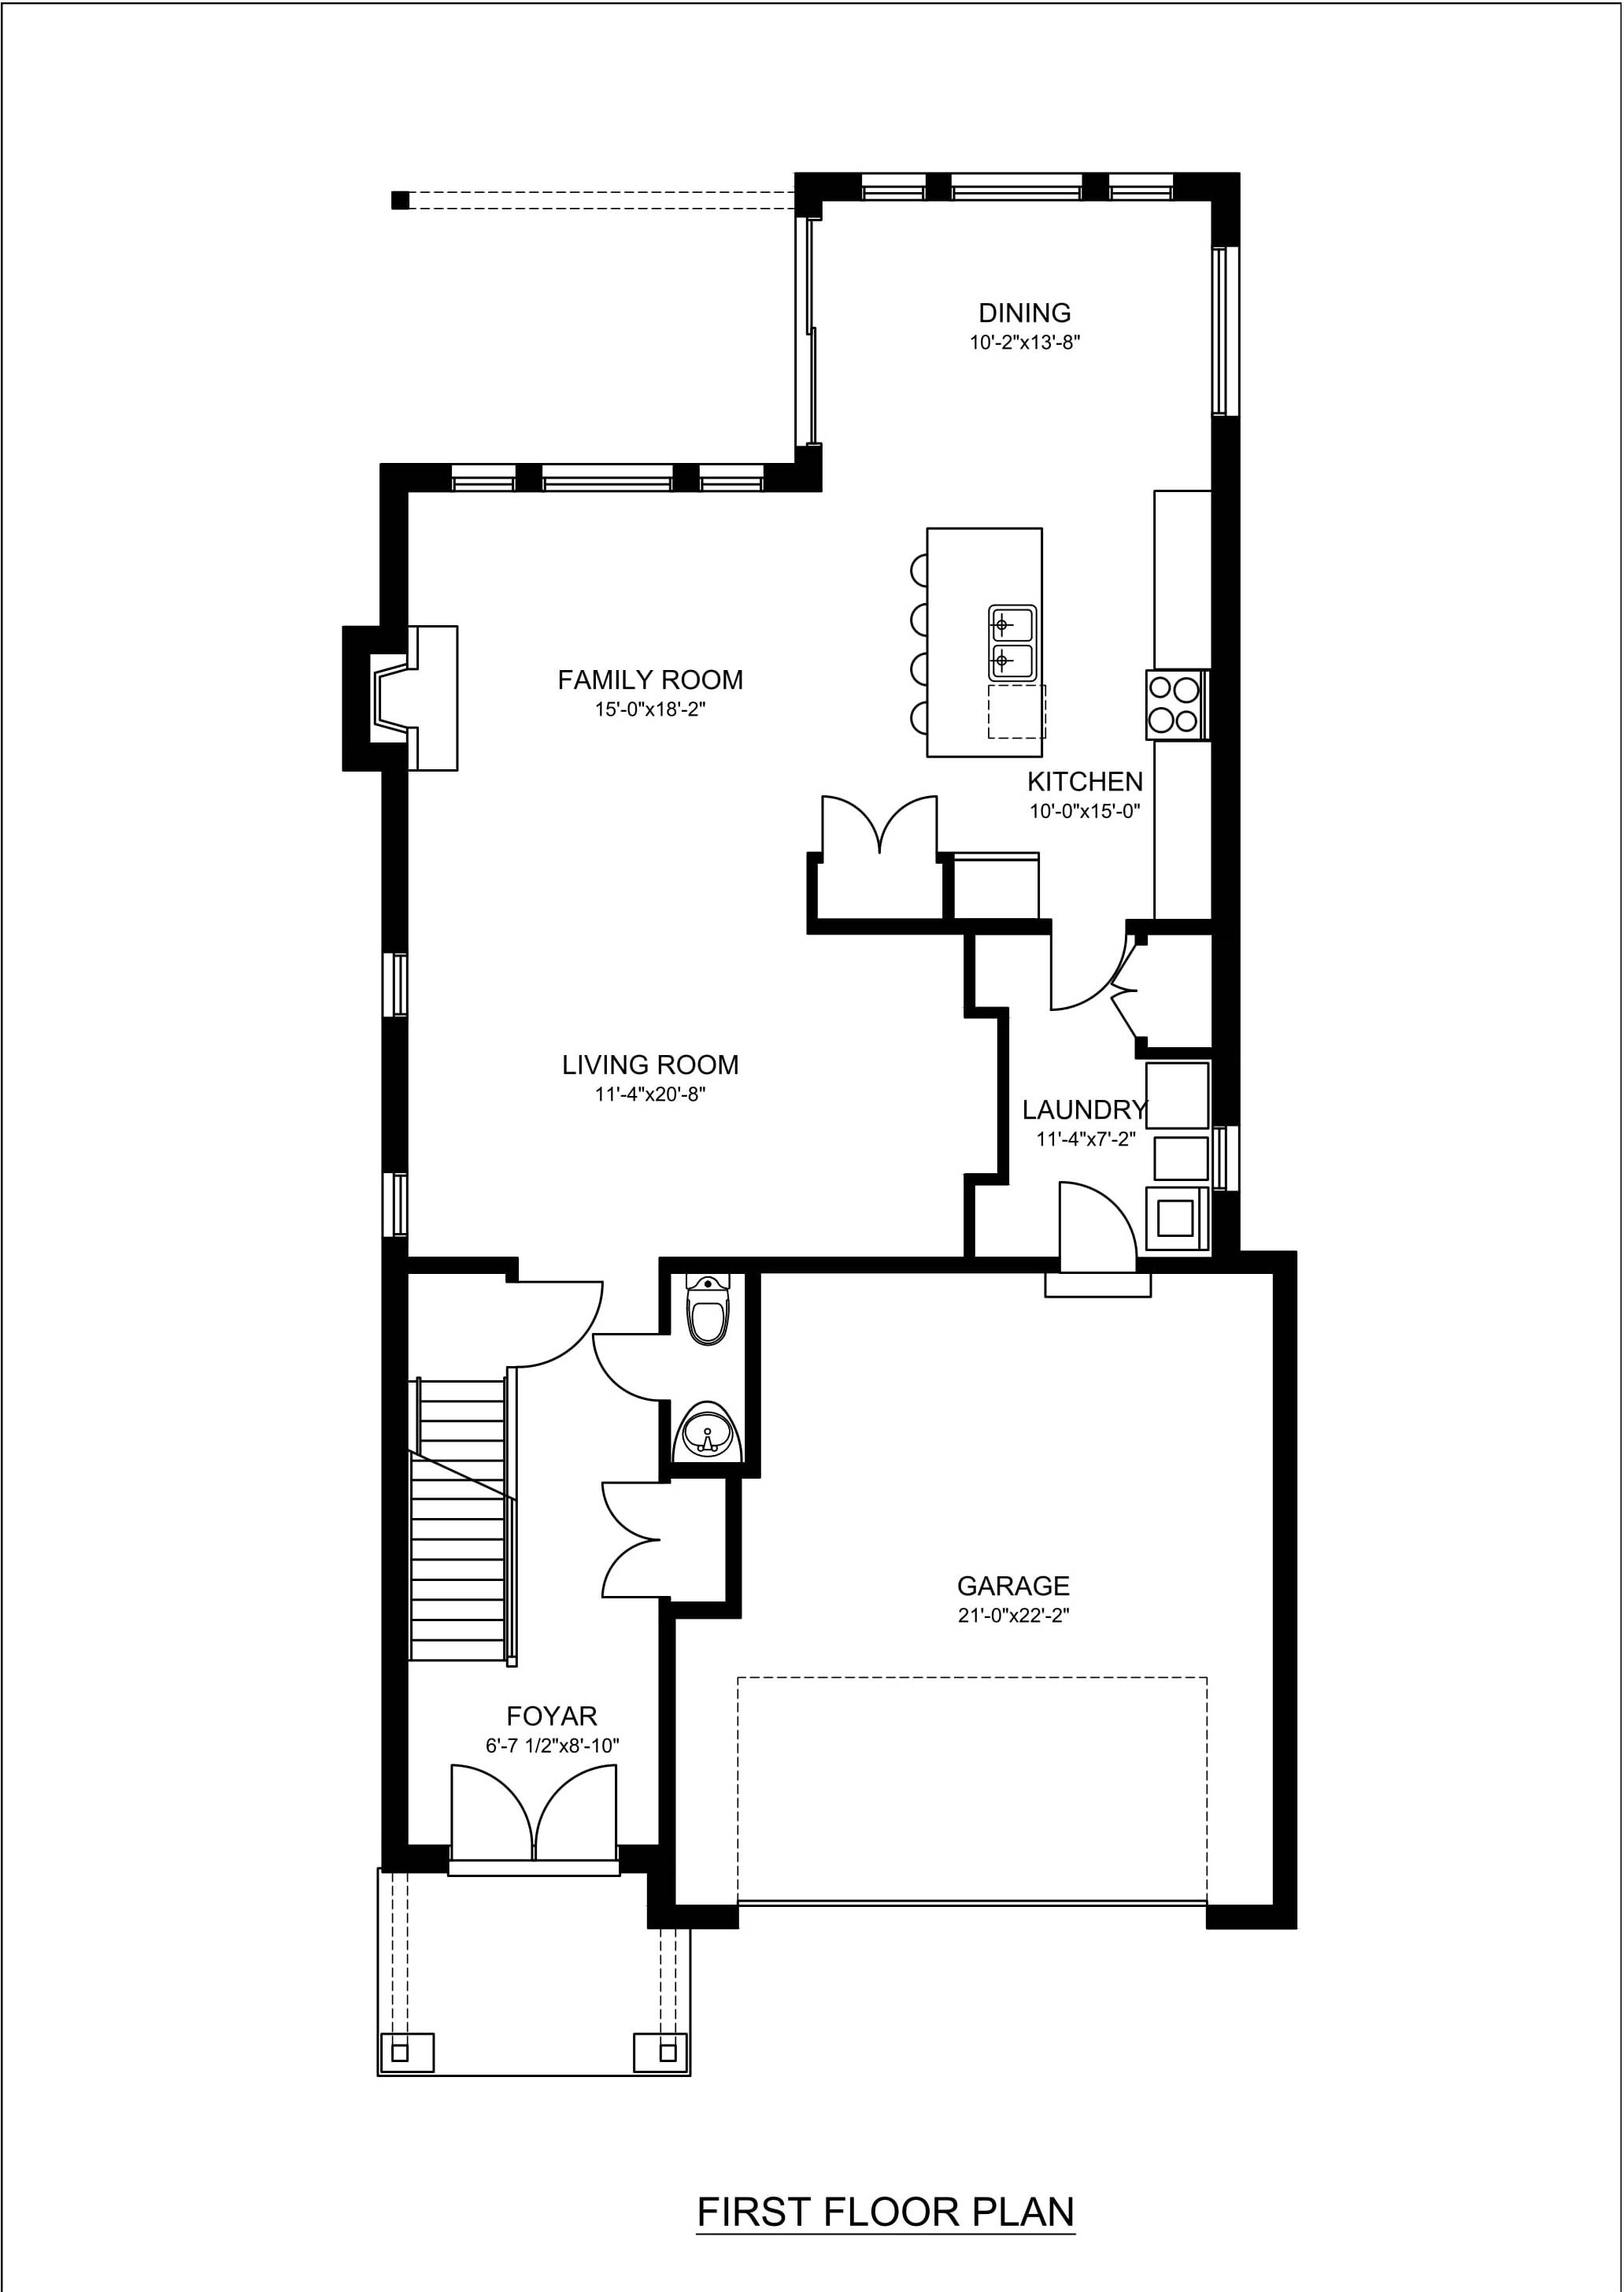 Real estate 2d floor plans design rendering samples for How to design a house floor plan